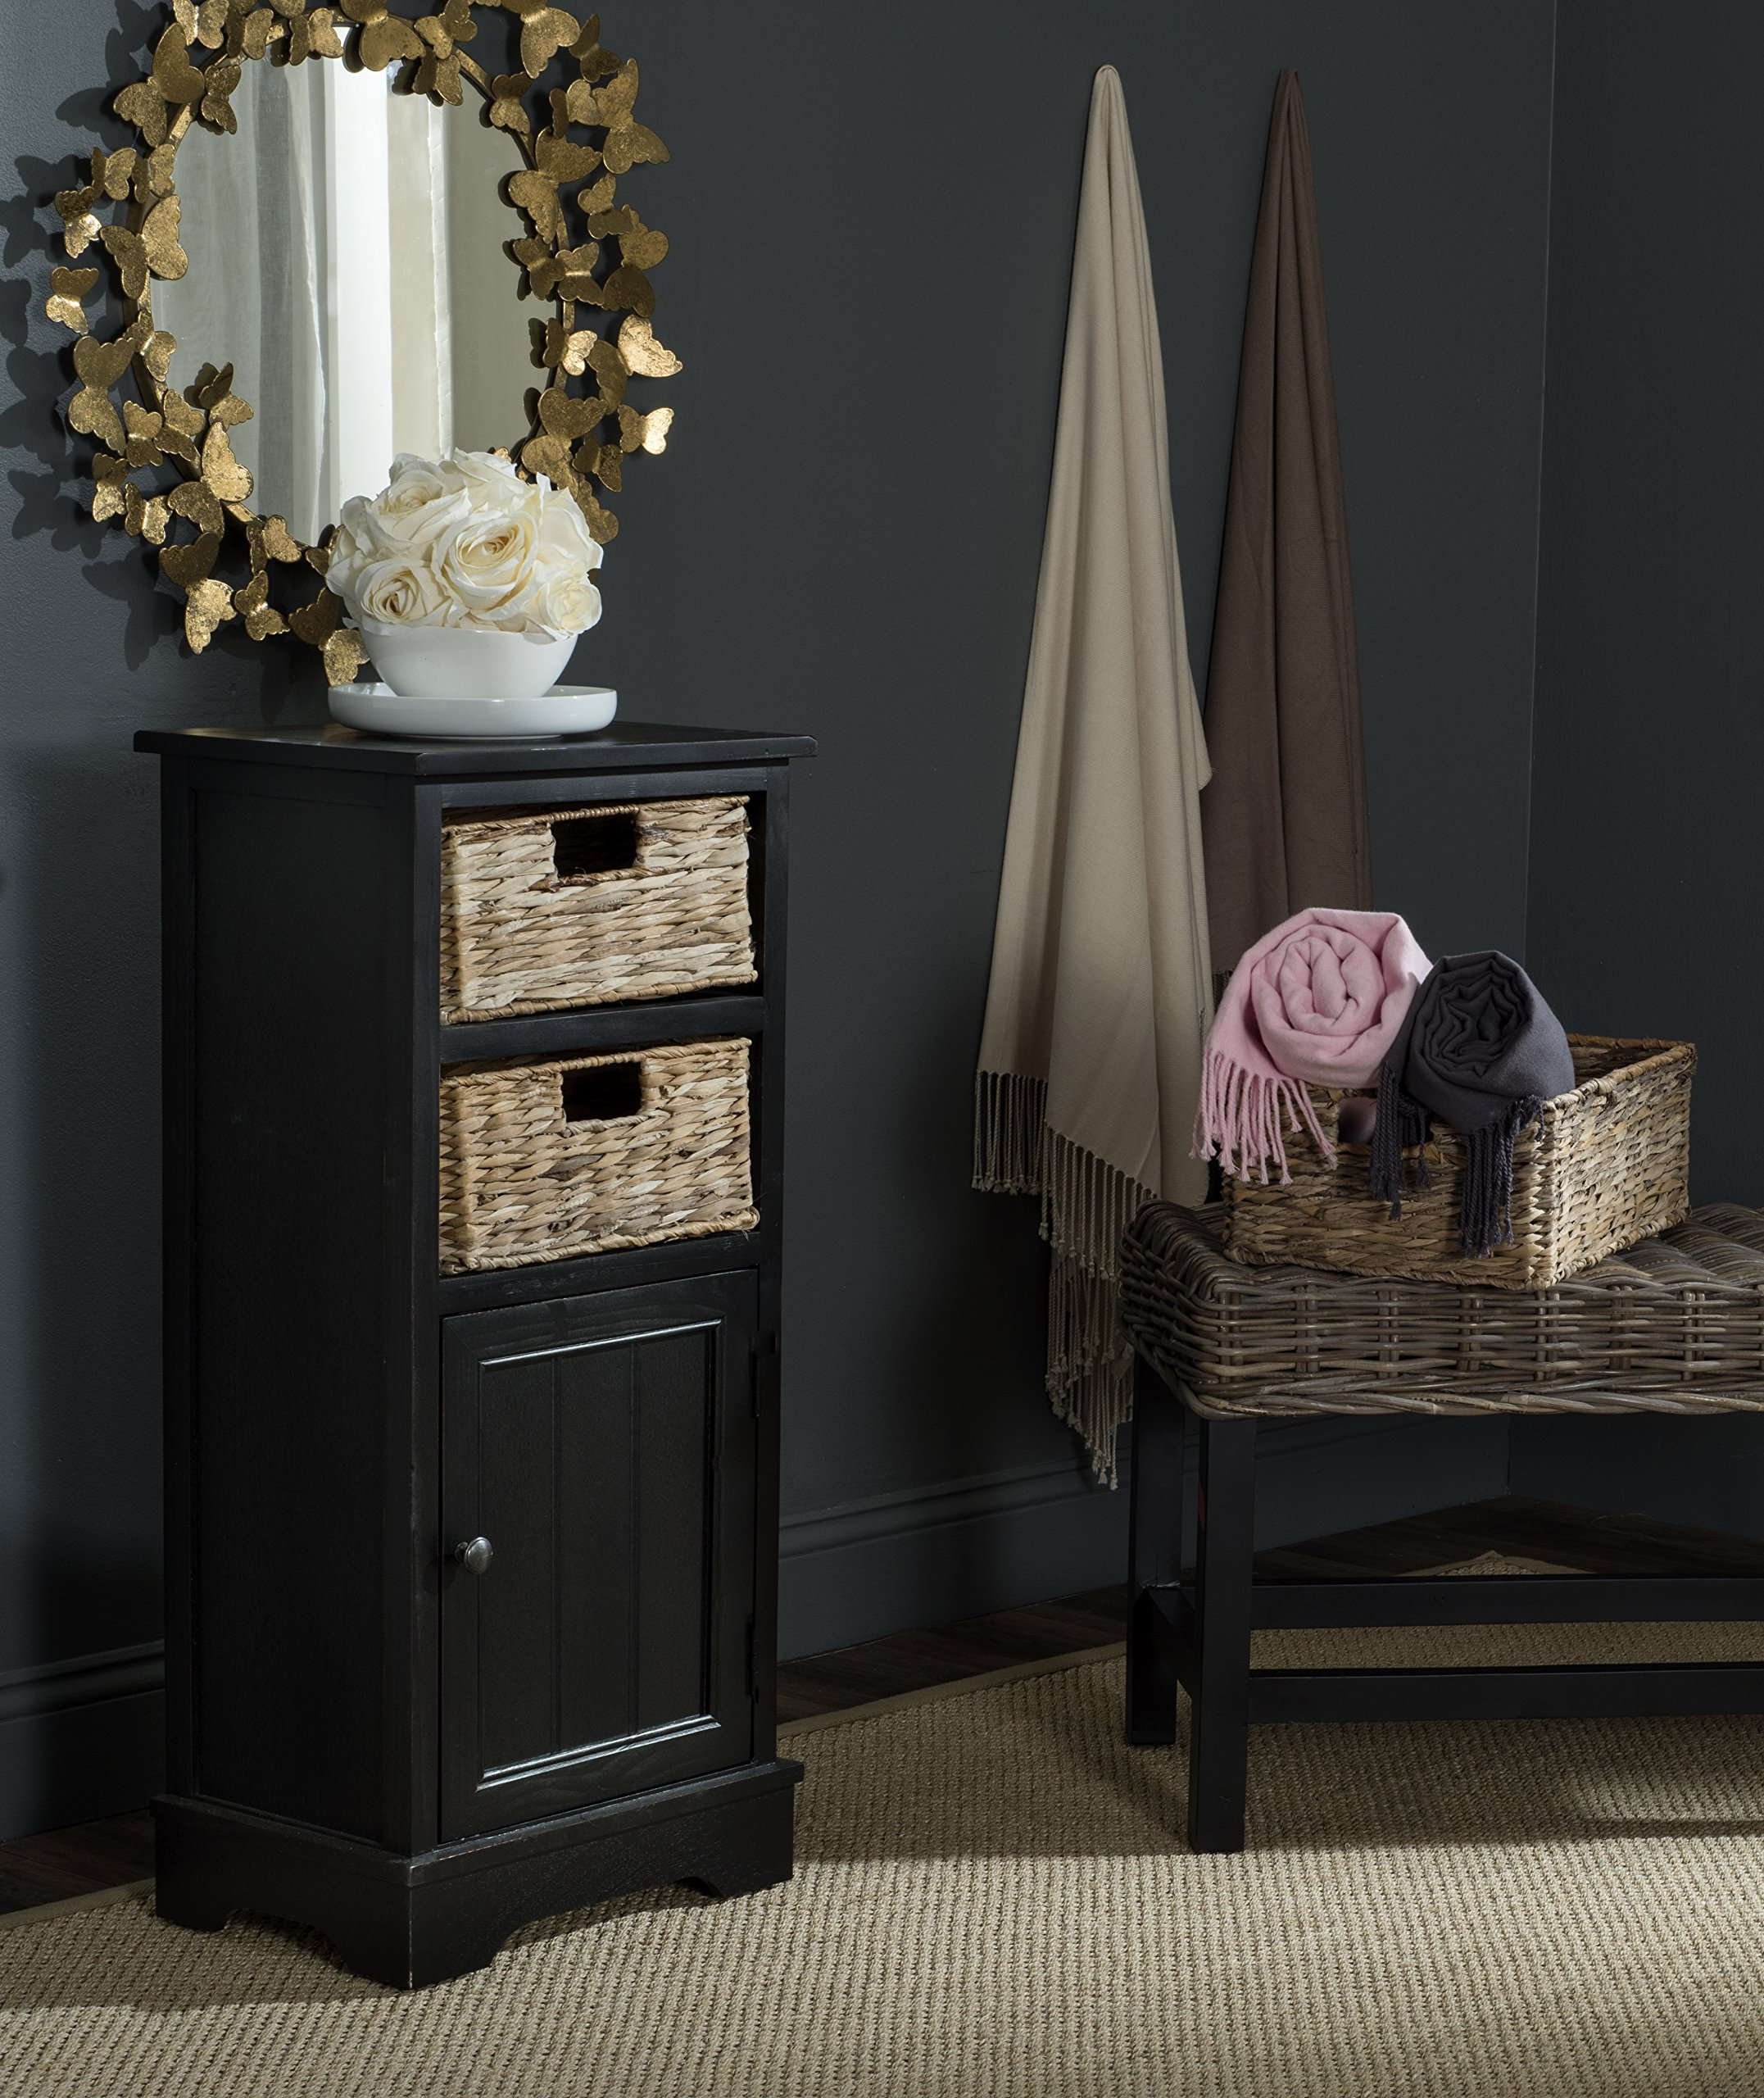 Safavieh American Homes Collection Connery Distressed Black Cabinet by Safavieh